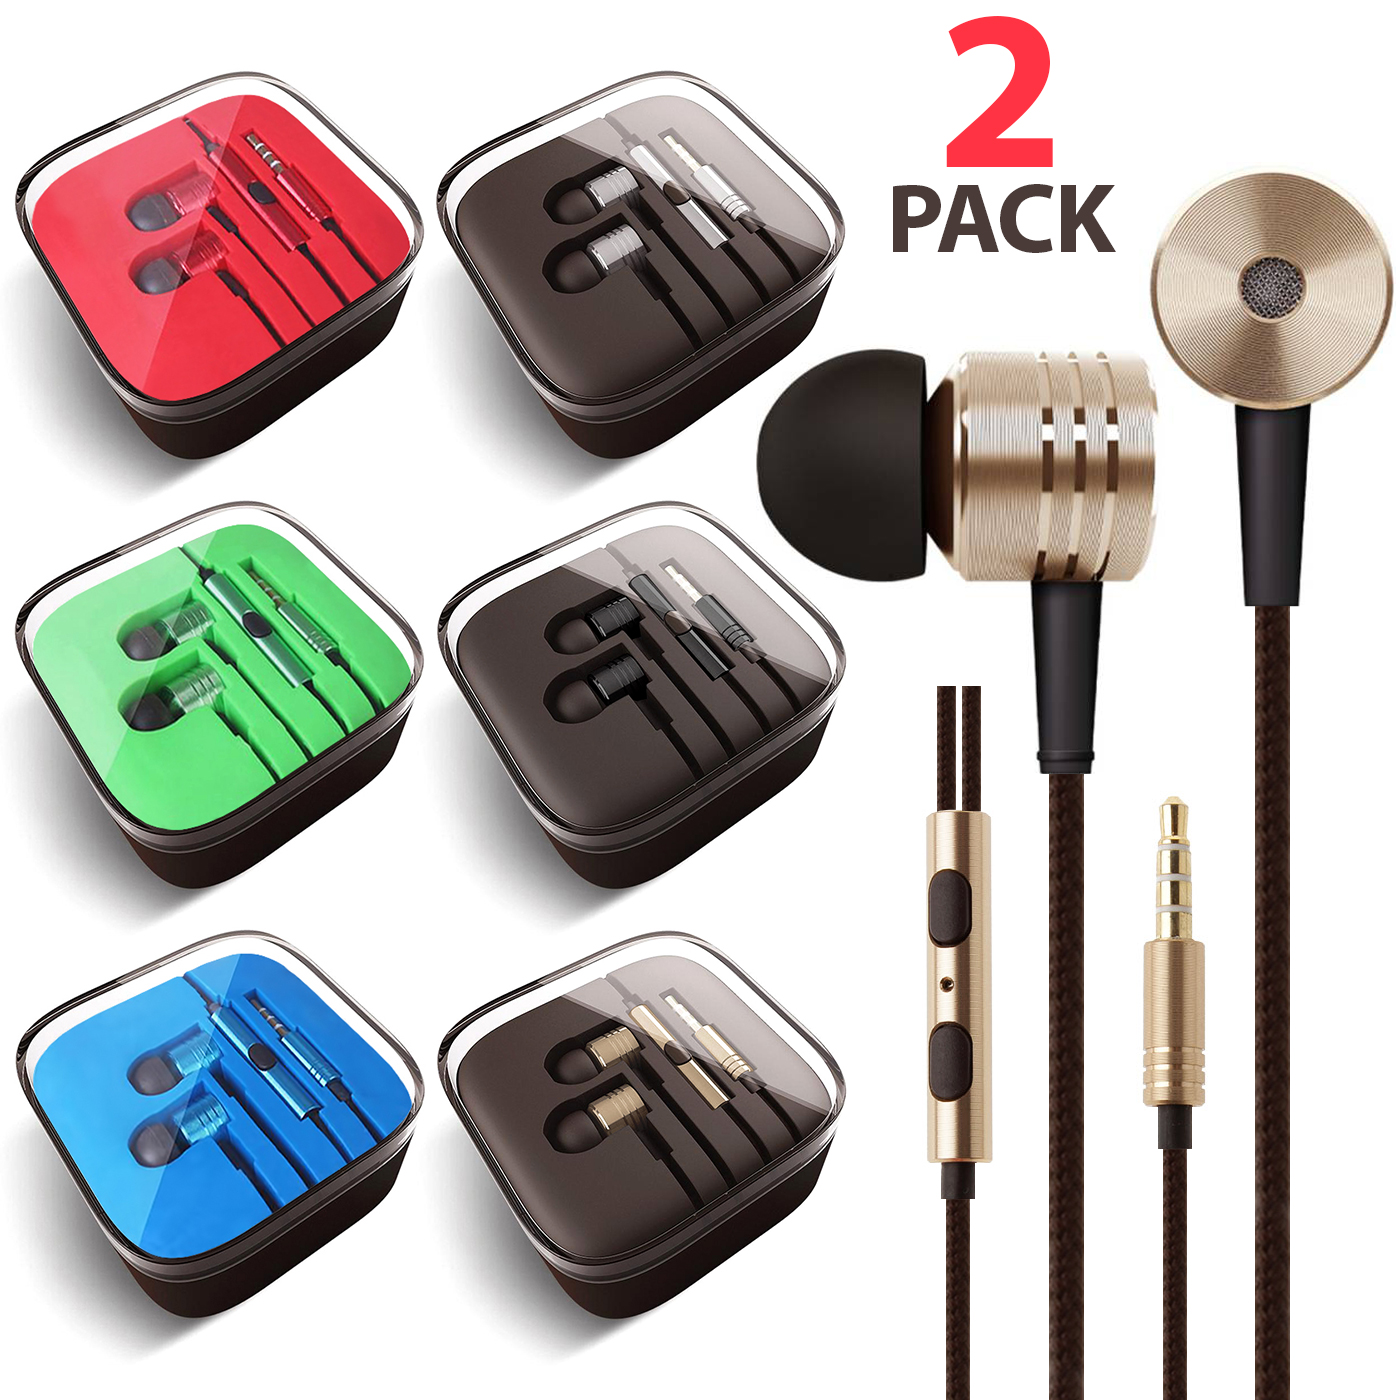 2x Pack 3.5mm Headphones In-Ear Earbuds Afflux Universal Stereo Headset Earphones For Cellphone Tablet iPhone 6 6S 5S SE 6/6S Plus Earbuds iPod iPad Samsung Galaxy S9 S8 S7 S6 Note 5 Note 8 9 LG Stylo